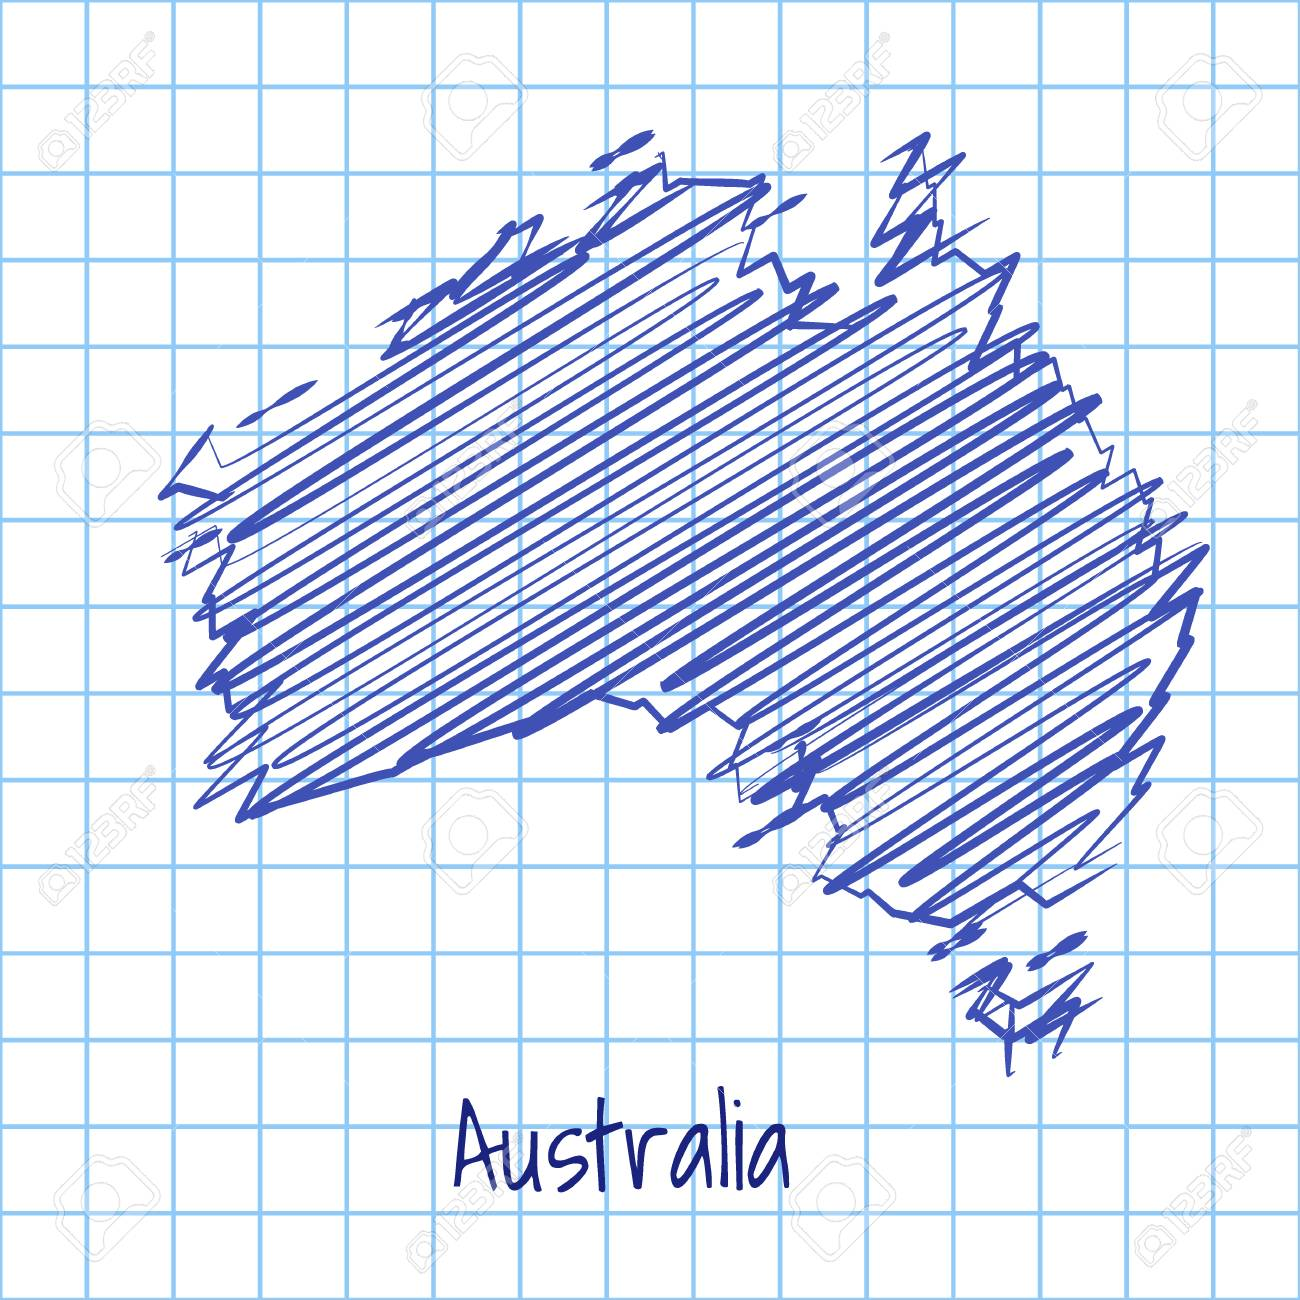 Australia Map Grid.Map Of Australia Blue Sketch Abstract Background The Hand Drawn